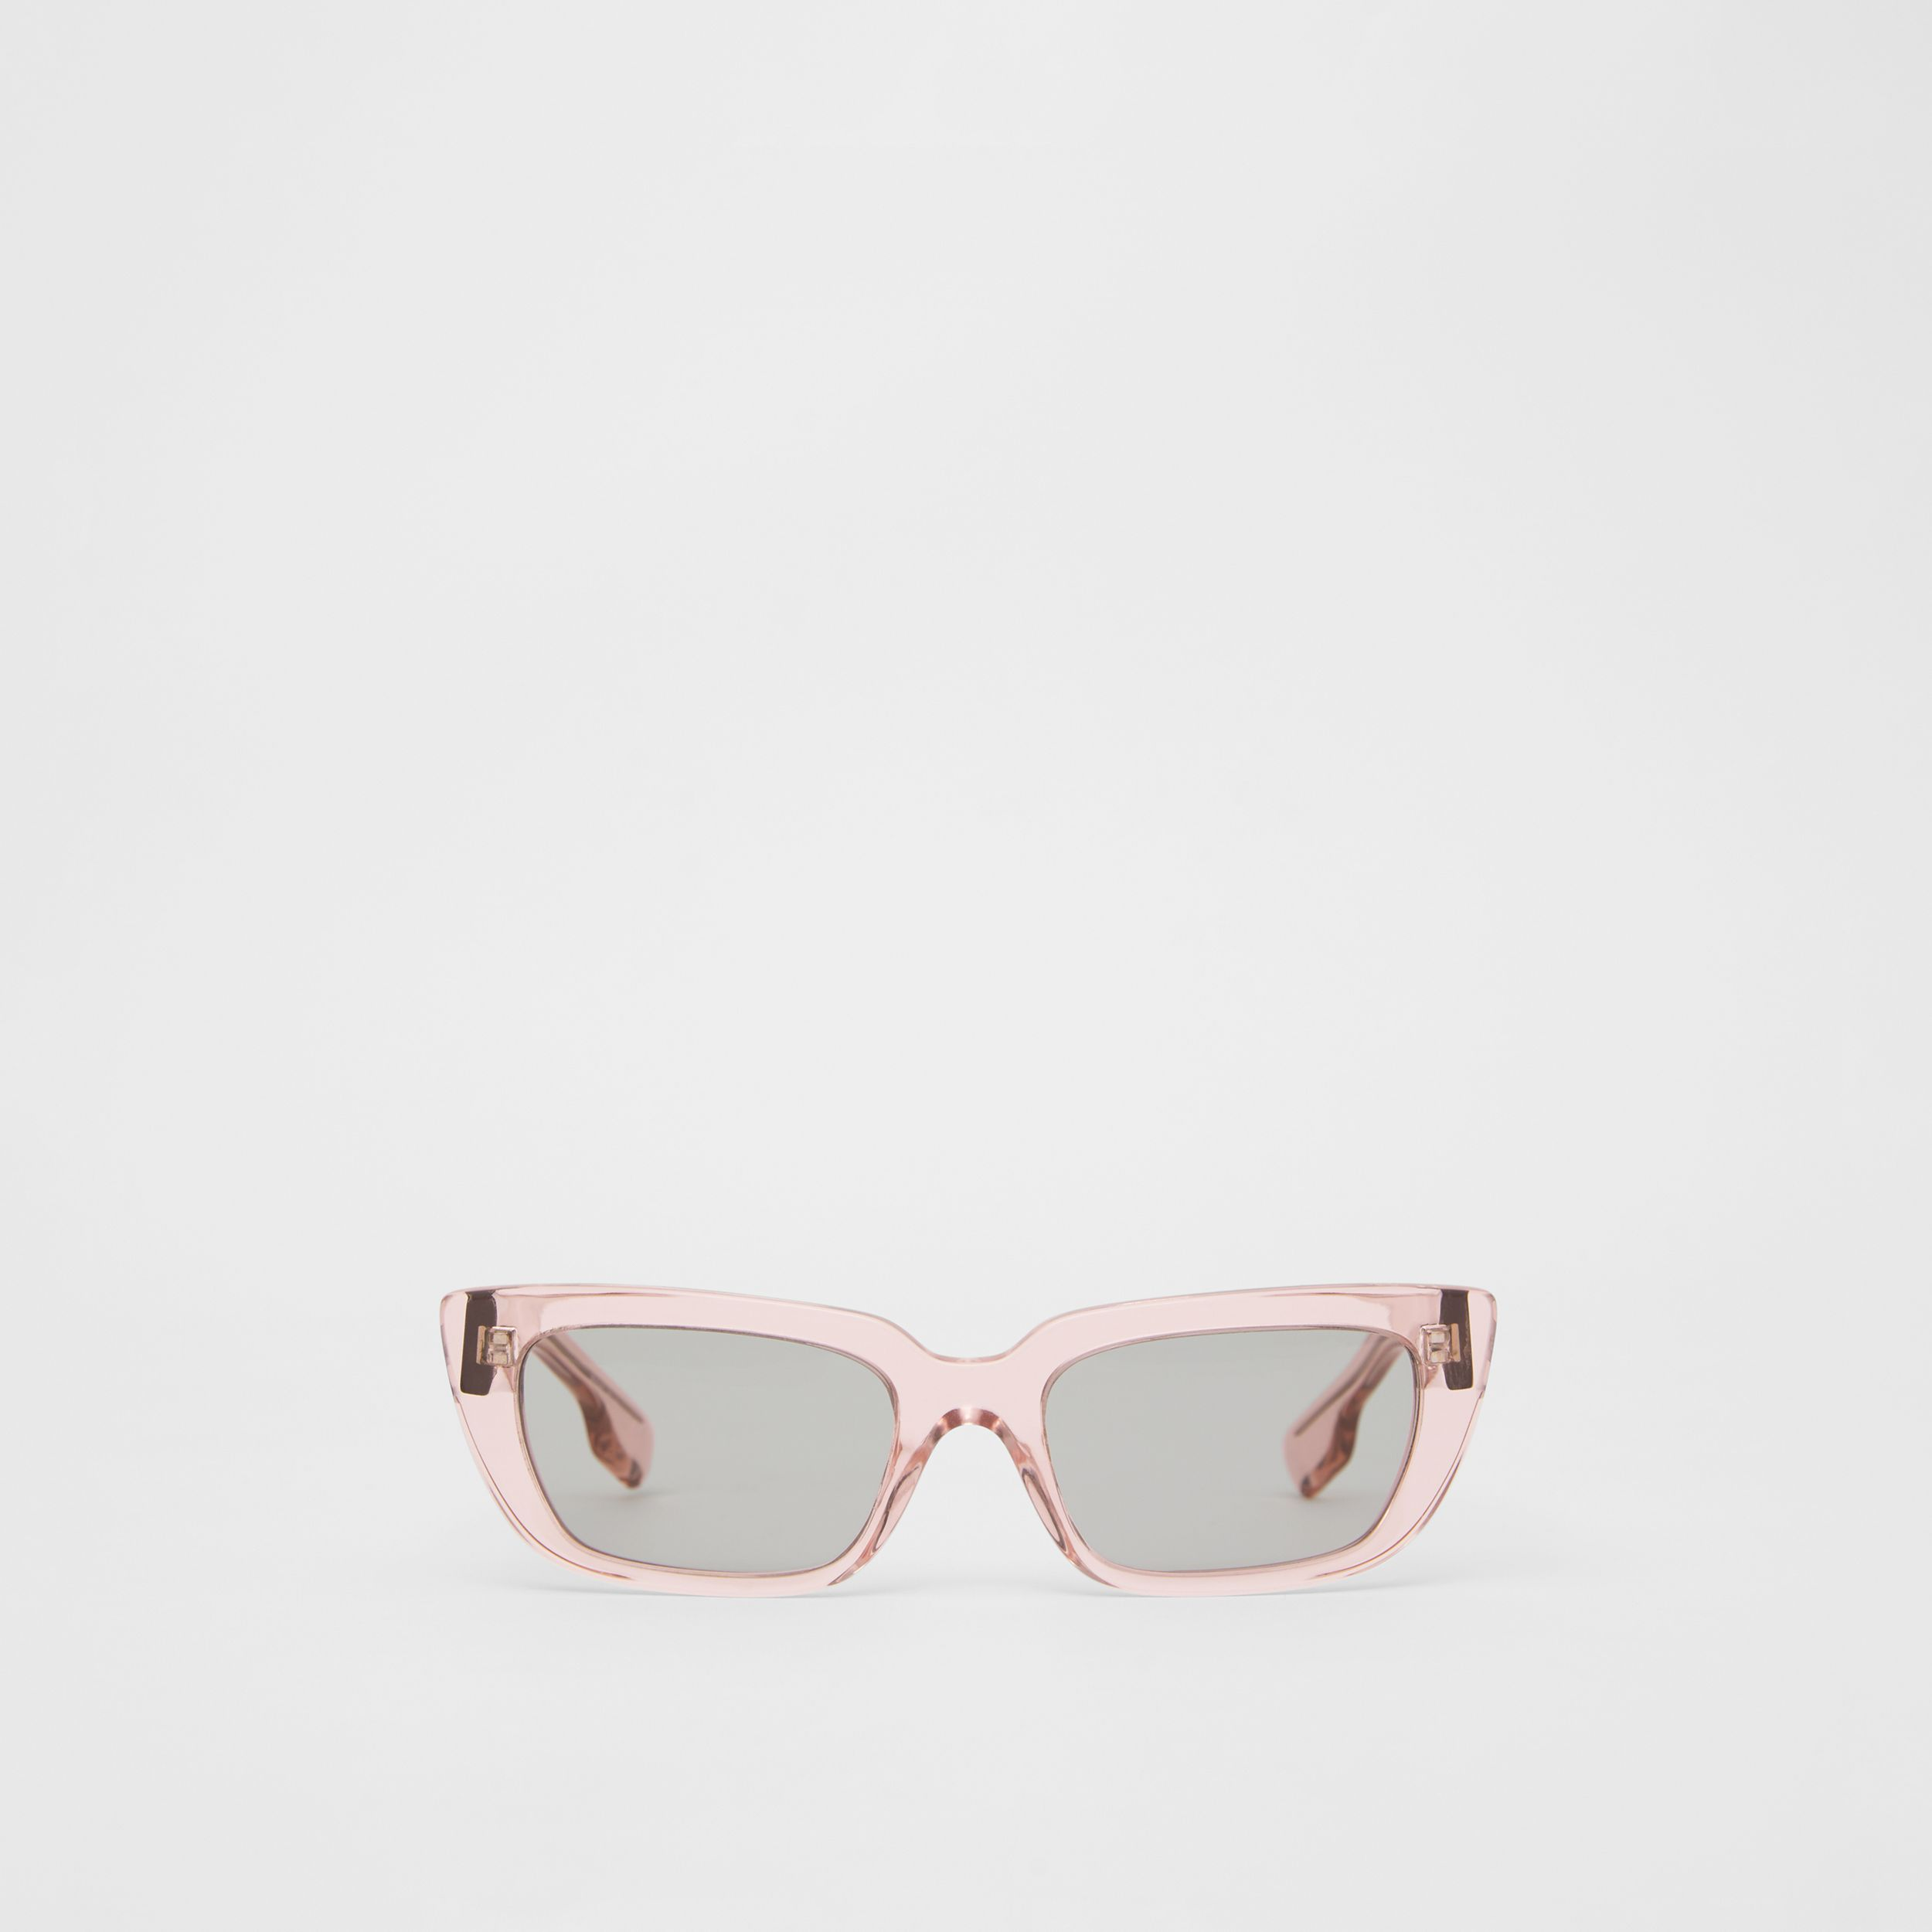 Bio-acetate Rectangular Frame Sunglasses in Light Pink - Women | Burberry Canada - 1